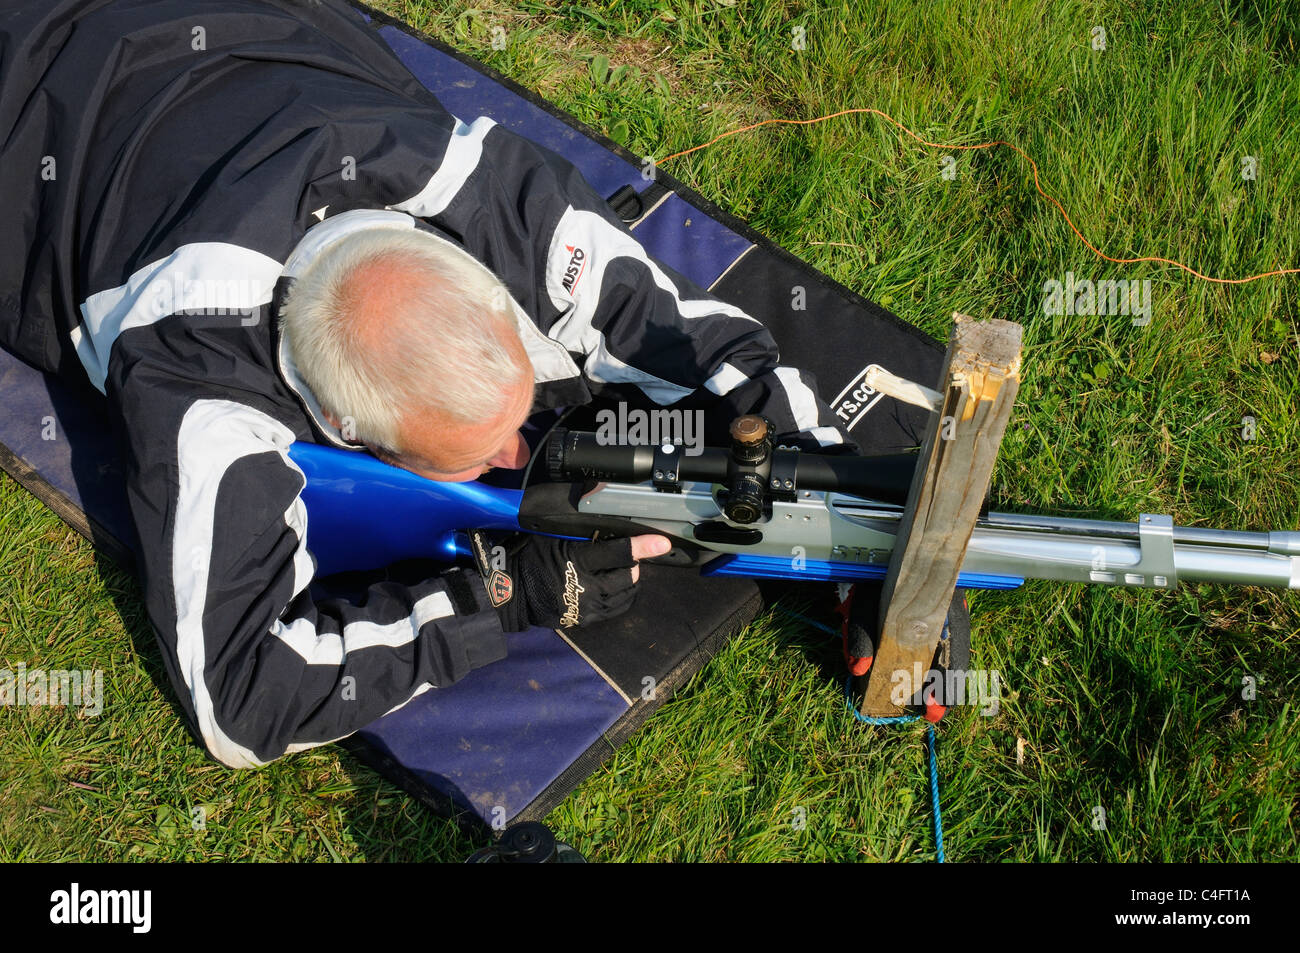 A man looking through the sights of an air rifle - Stock Image